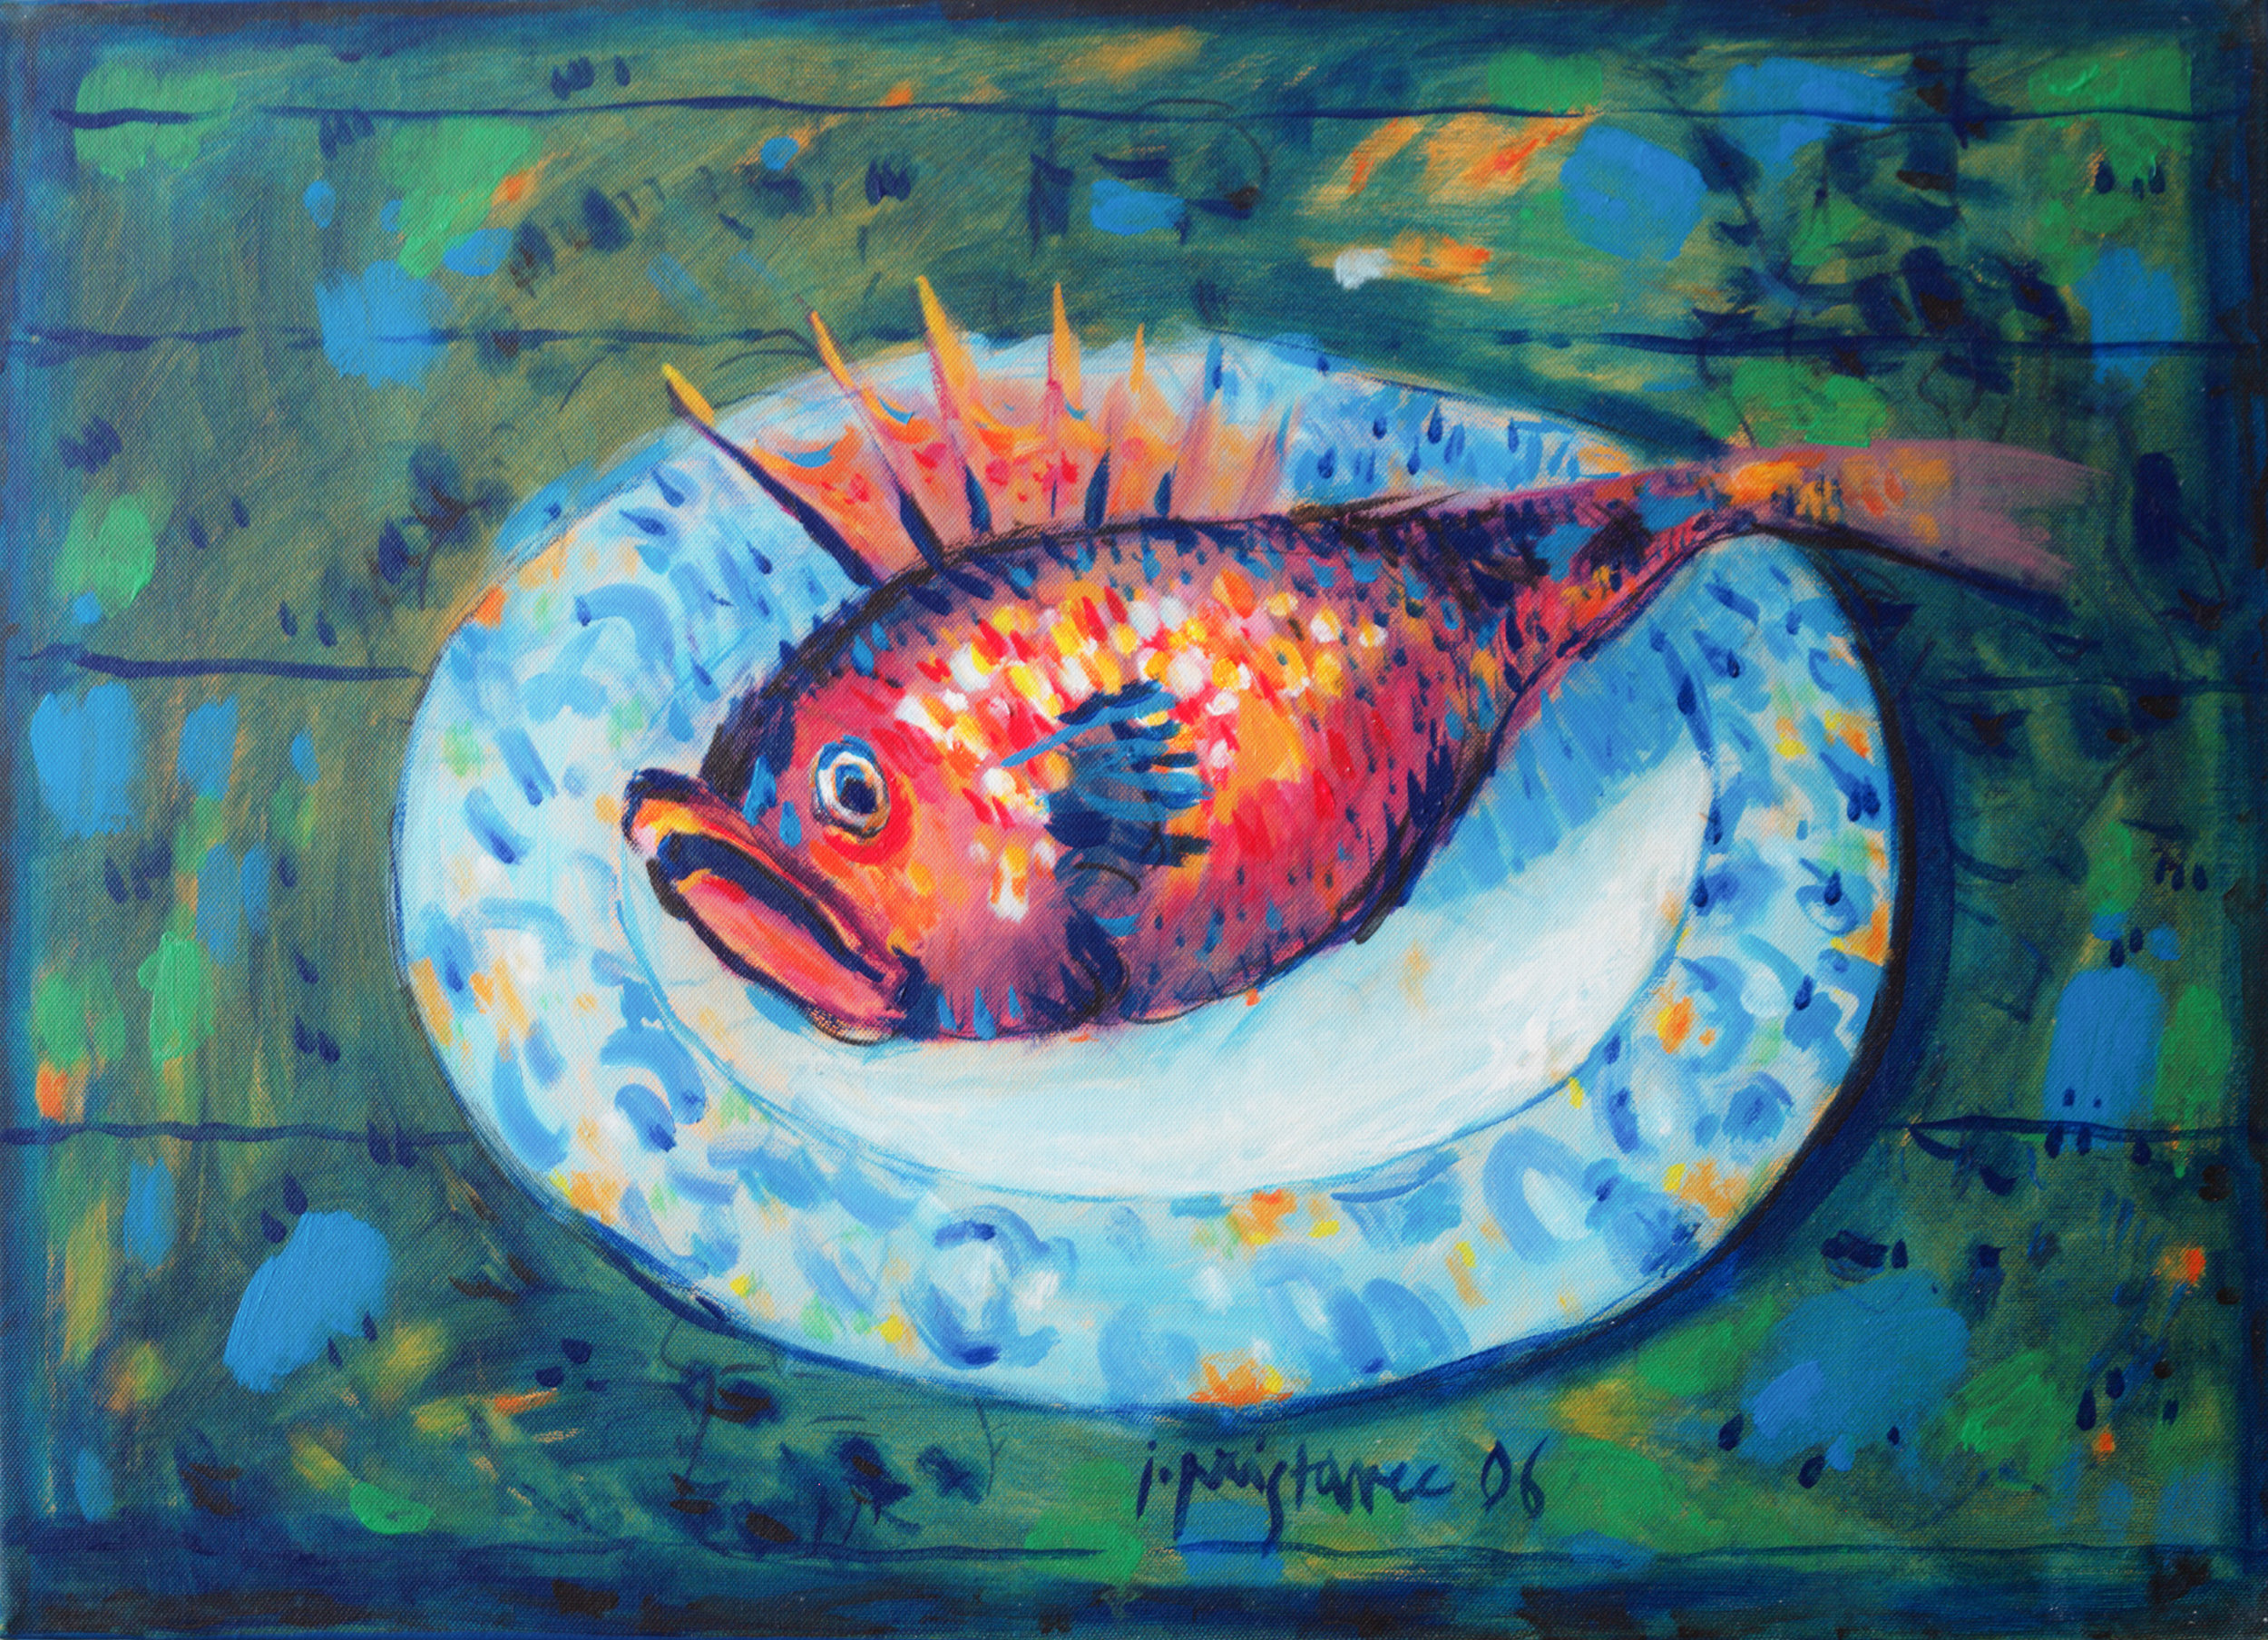 Fish on Plate  / 2006 / oil on canvas / 70 x 50 cm